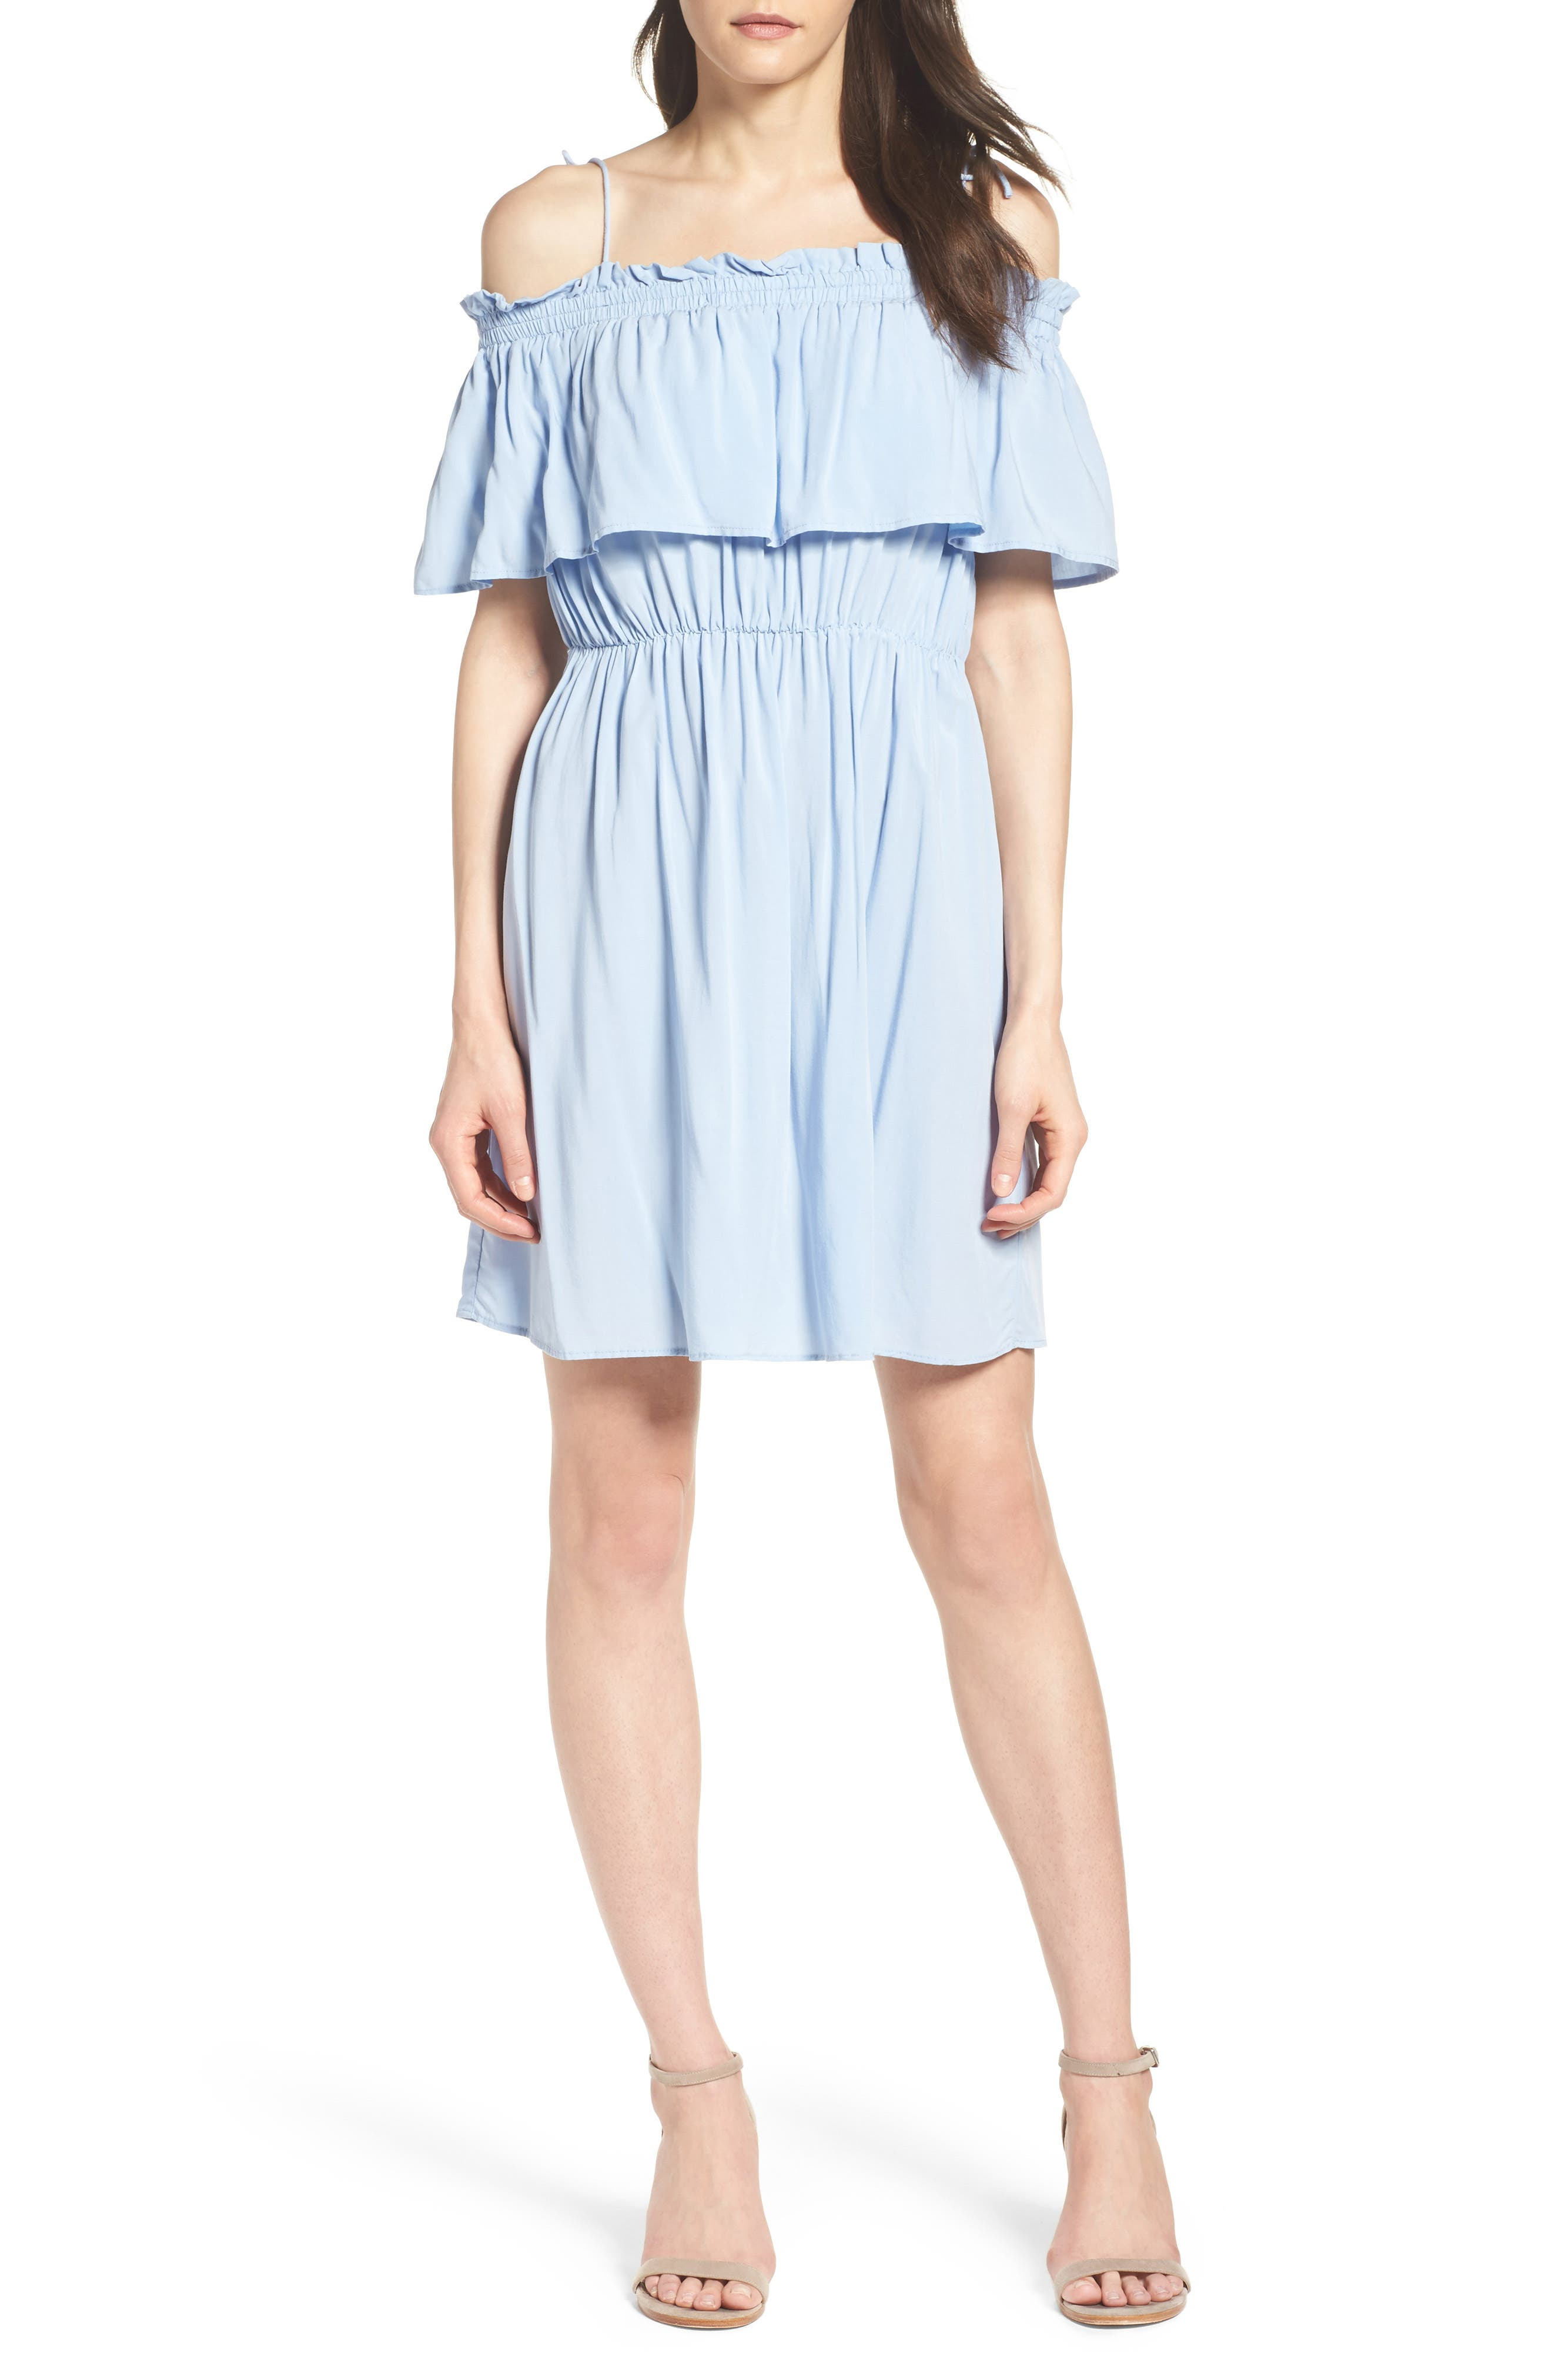 Chelsea Ruffle Bodice Off the Shoulder Dress,                             Alternate thumbnail 4, color,                             Sky Blue